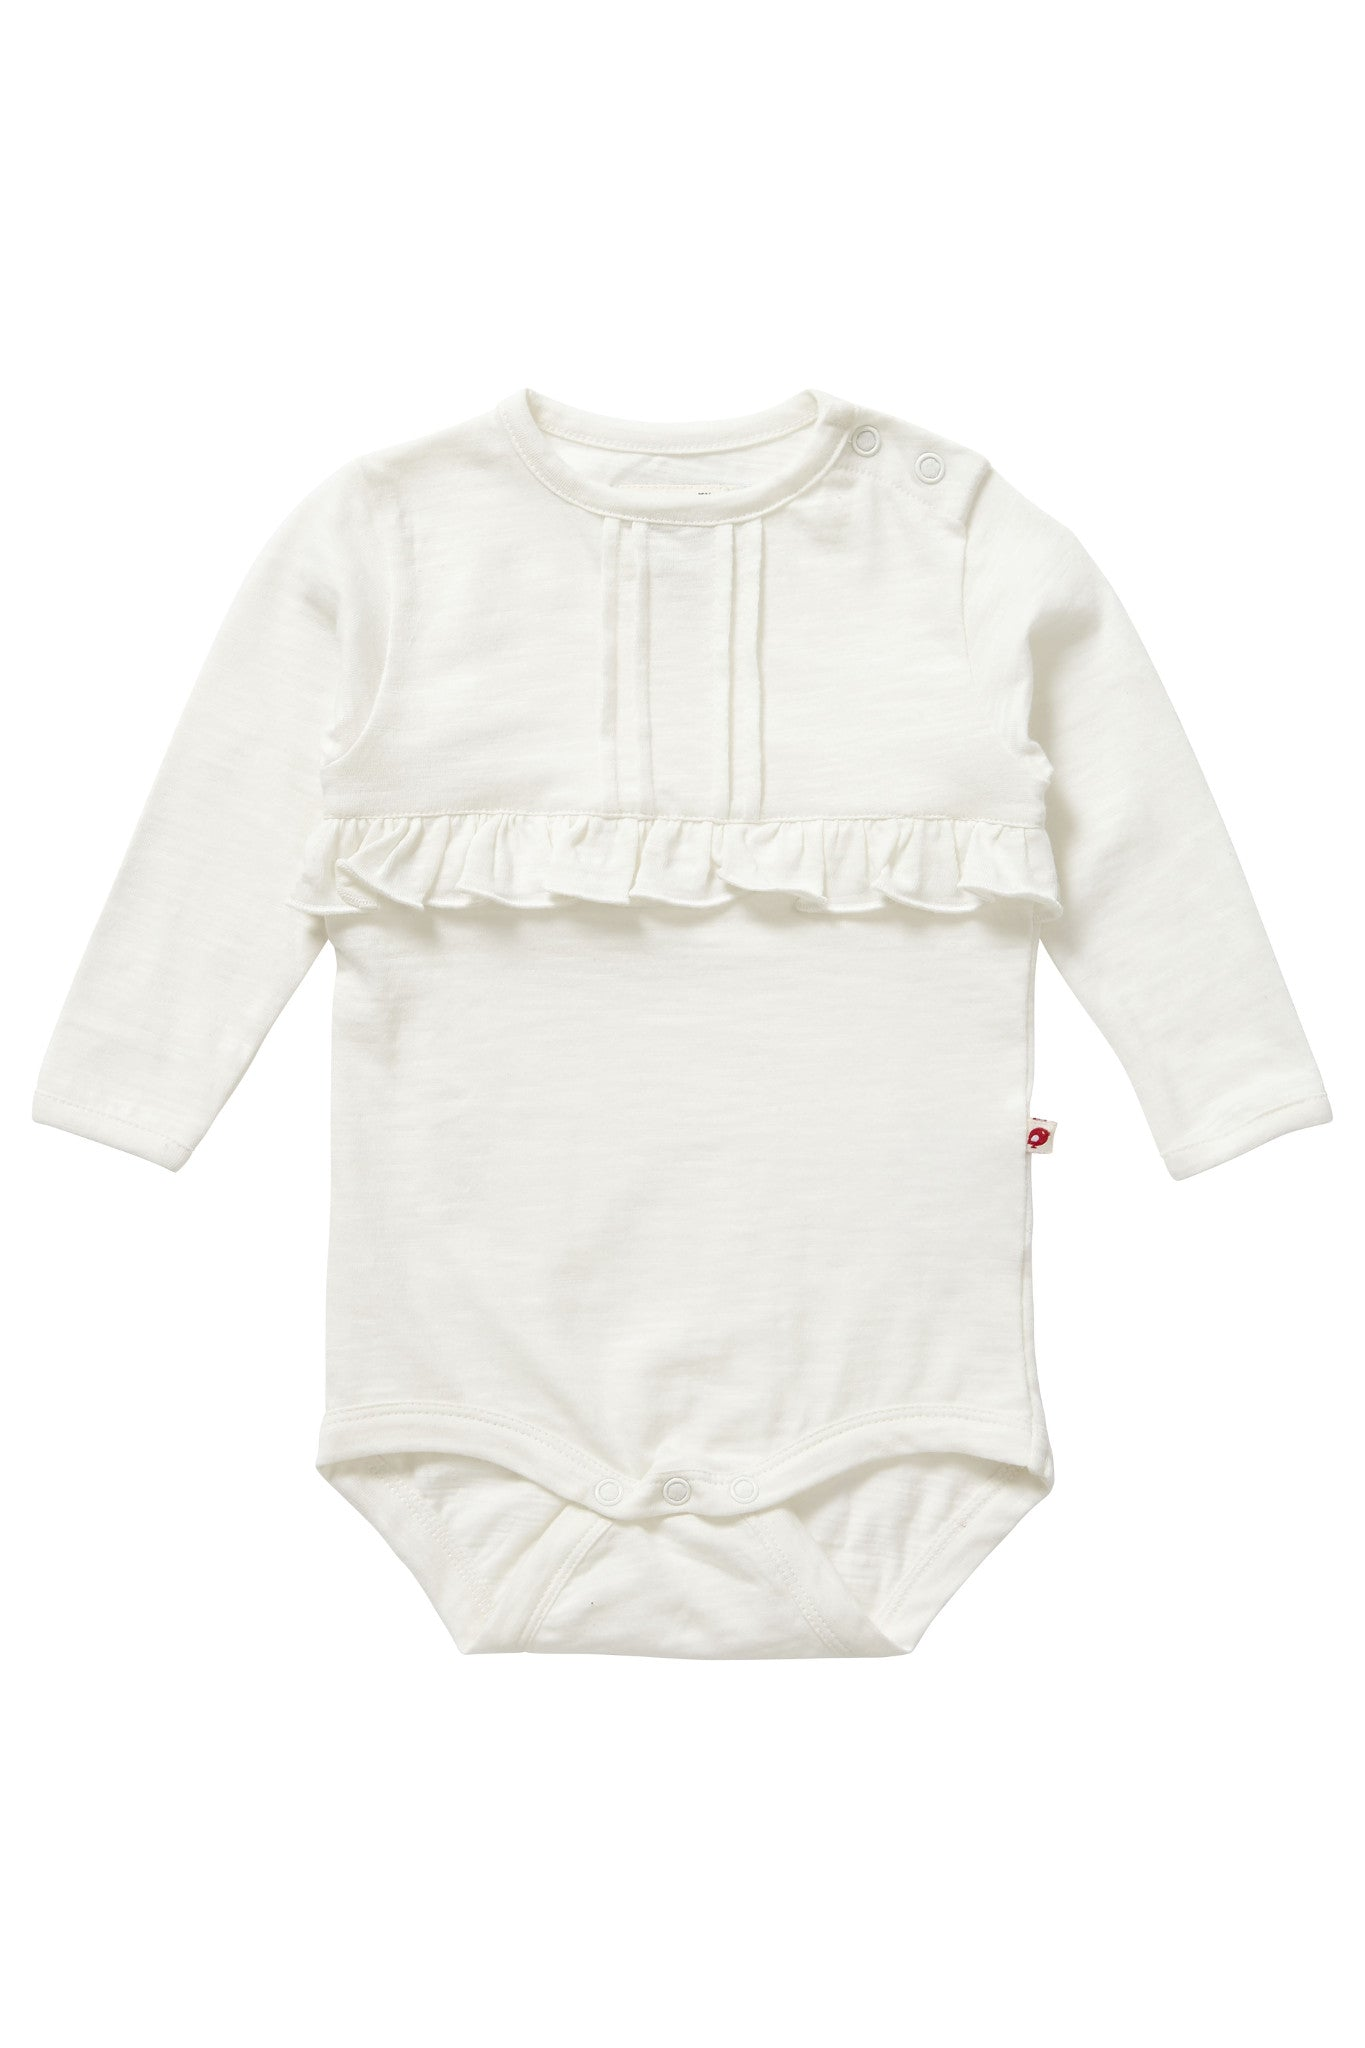 Bodysuit Cream Slub Baby - Piccalilly Fashion - Snugglefox